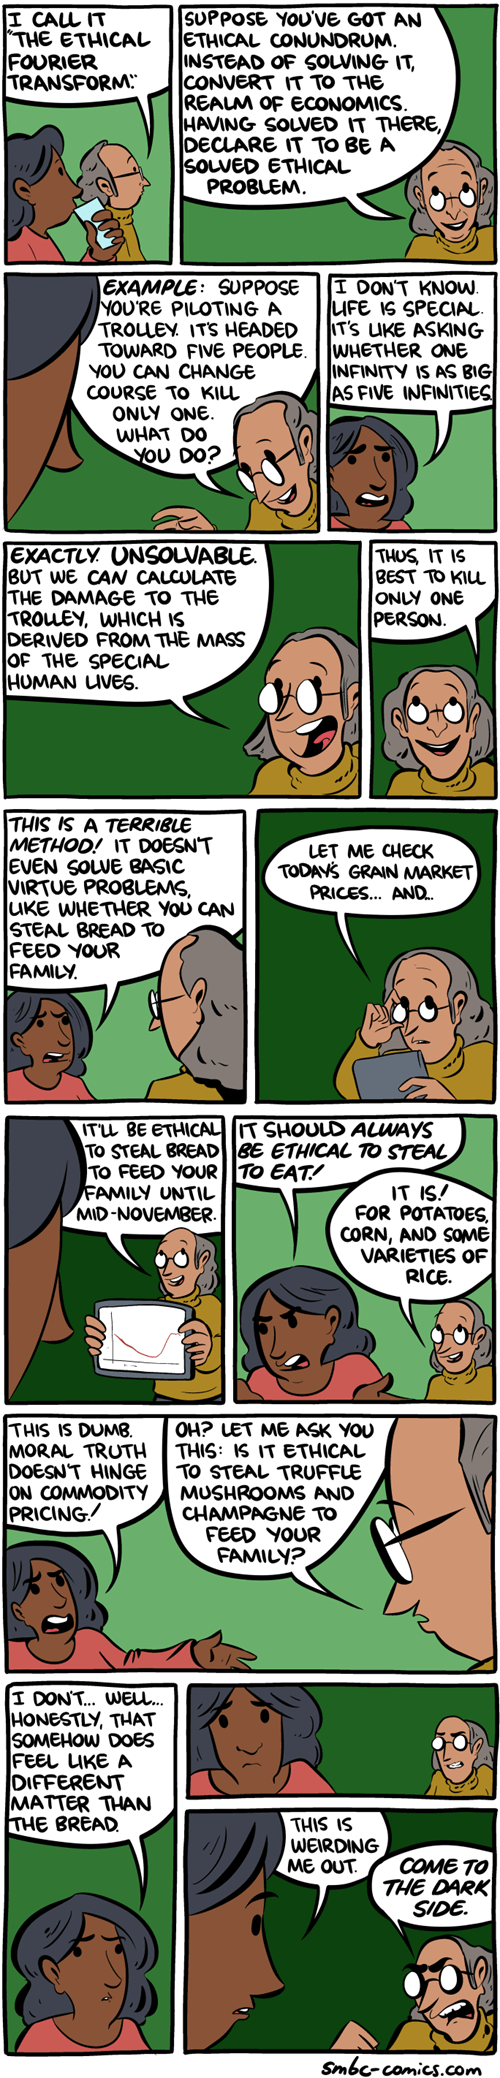 in this economy,Economics,ethics,web comics